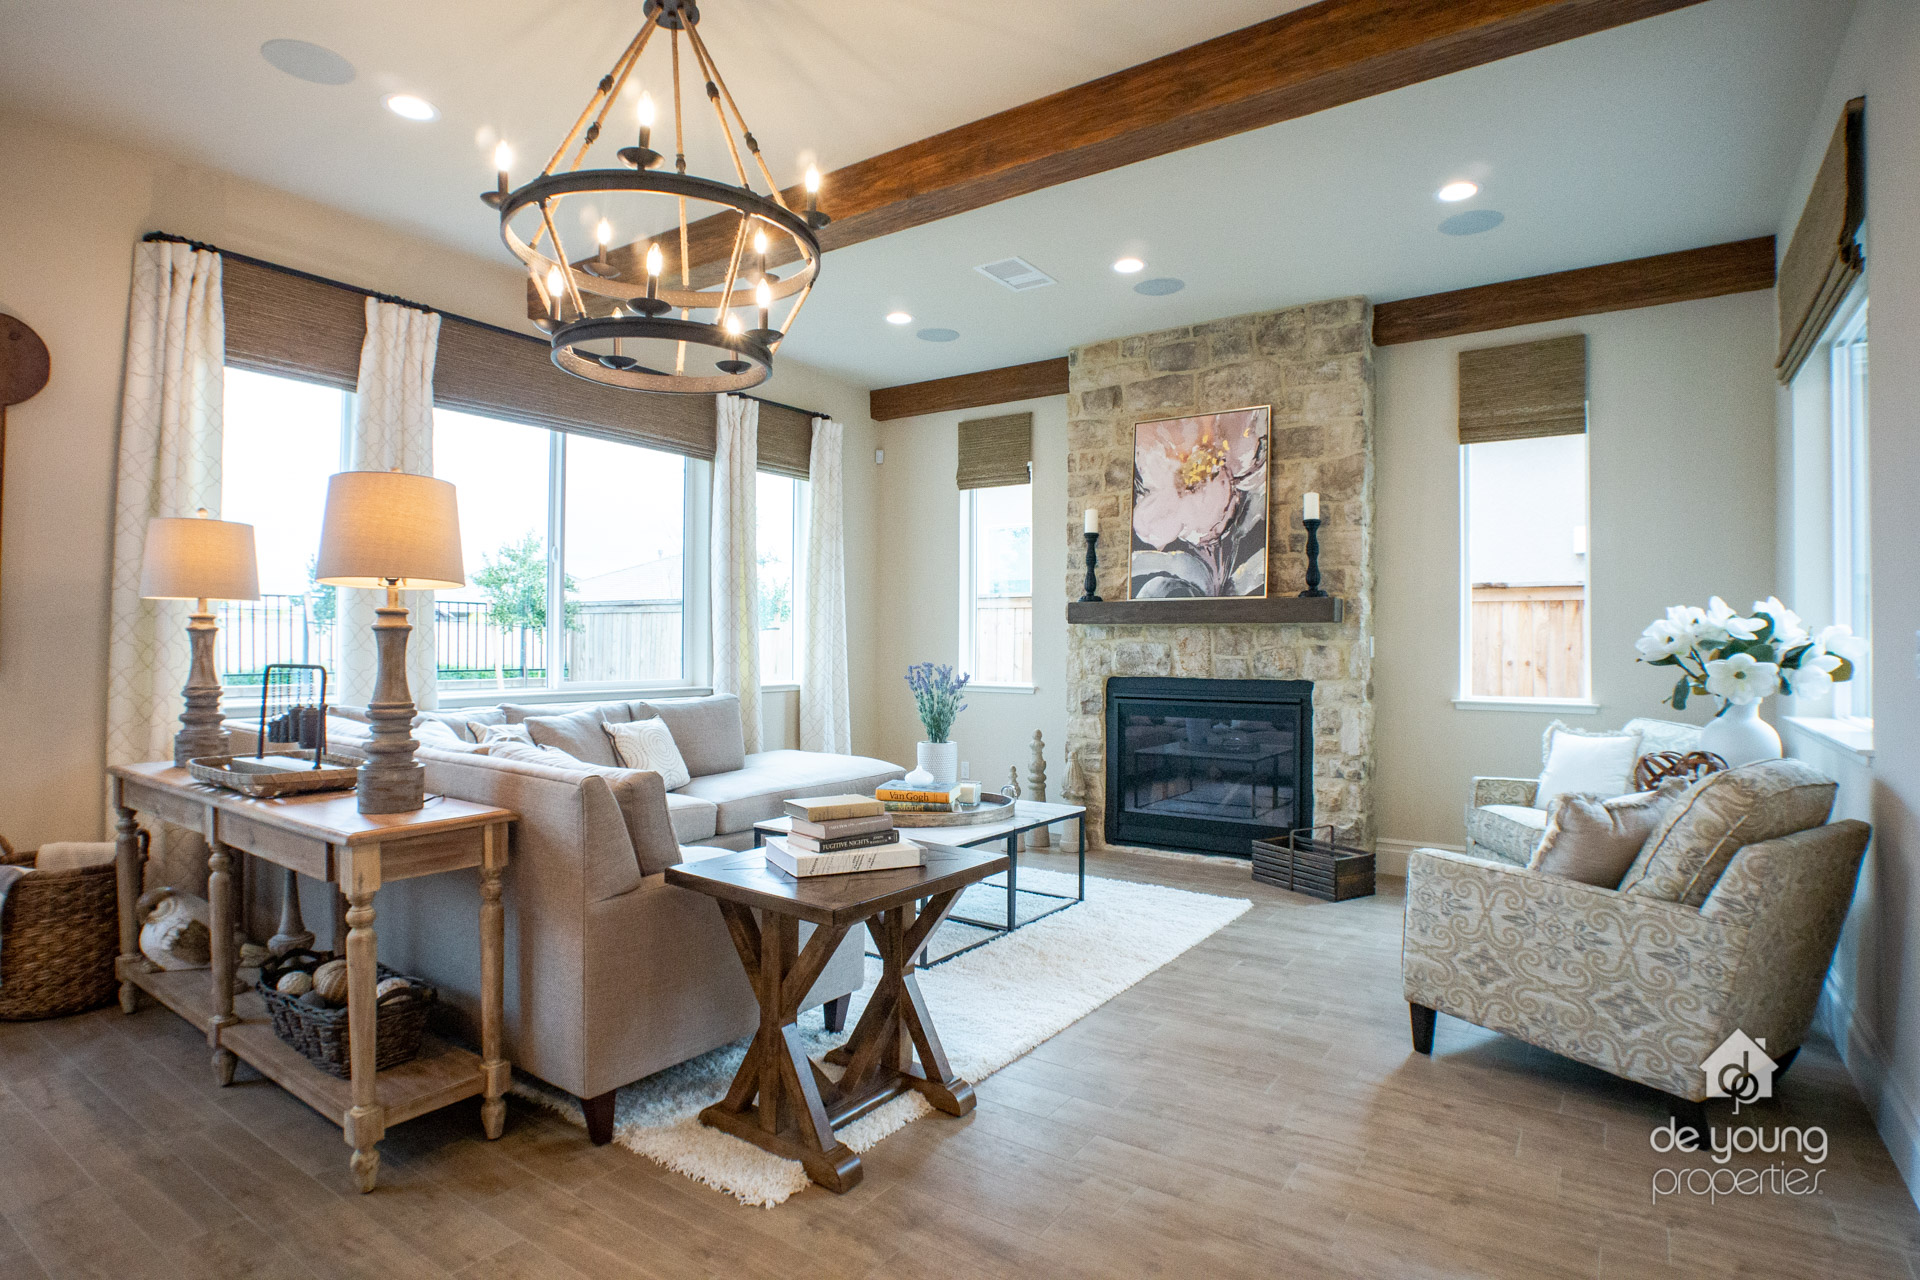 What's Your Home Aesthetic? 5 Hot Design Styles to Consider